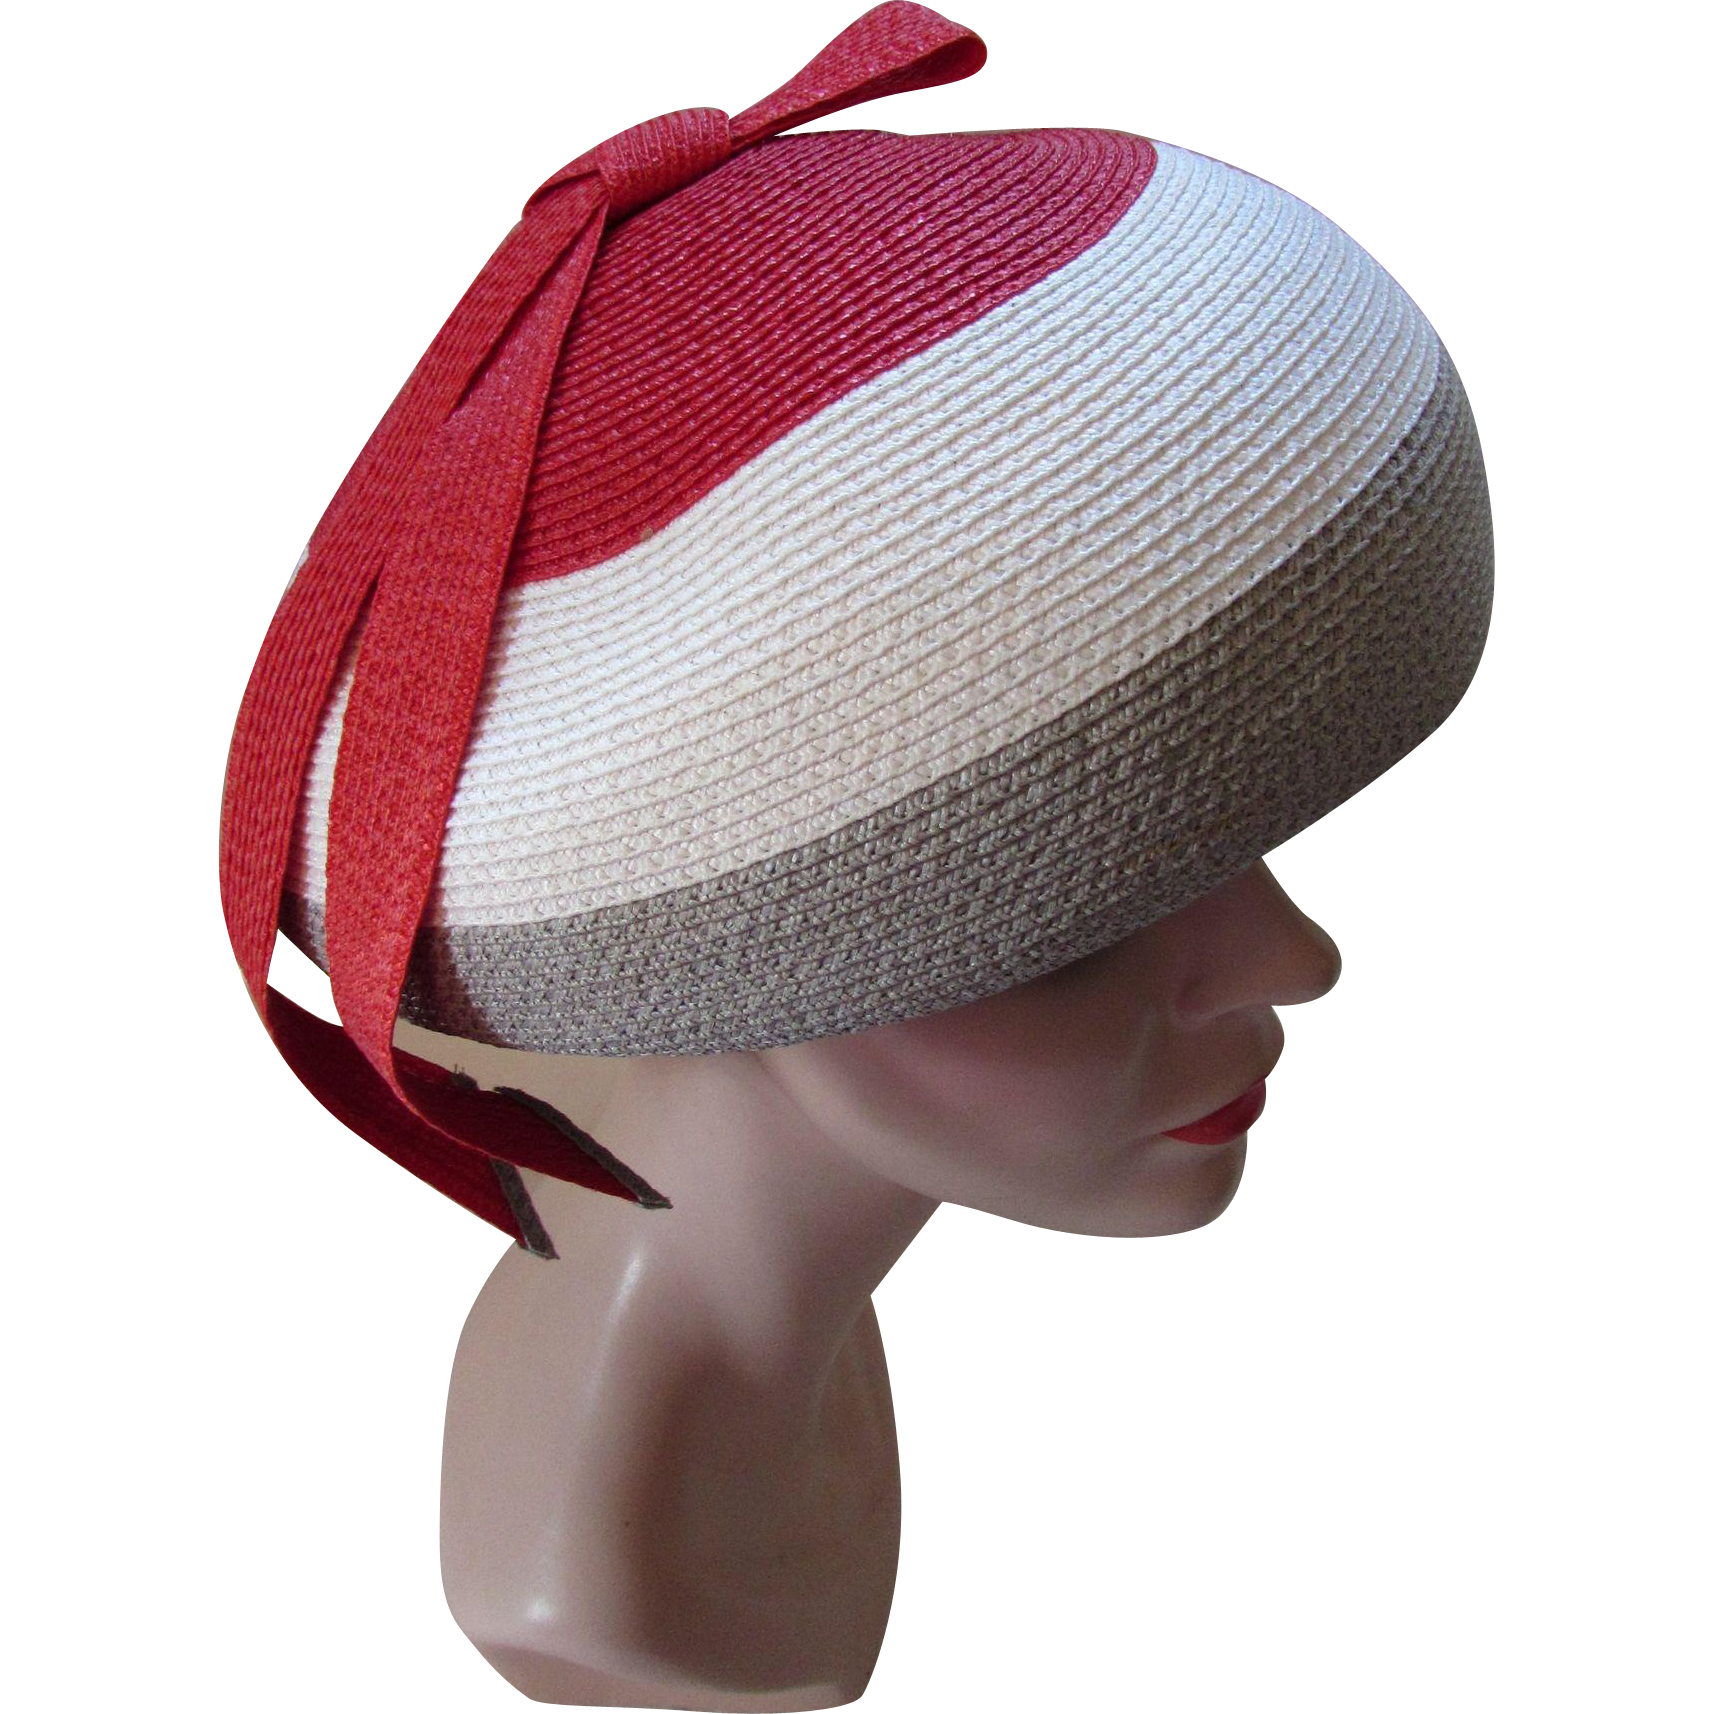 Mid Century Mushroom Hat in Cherry Red, Dove Gray and White  with Tab Bow Marshall Field & Company